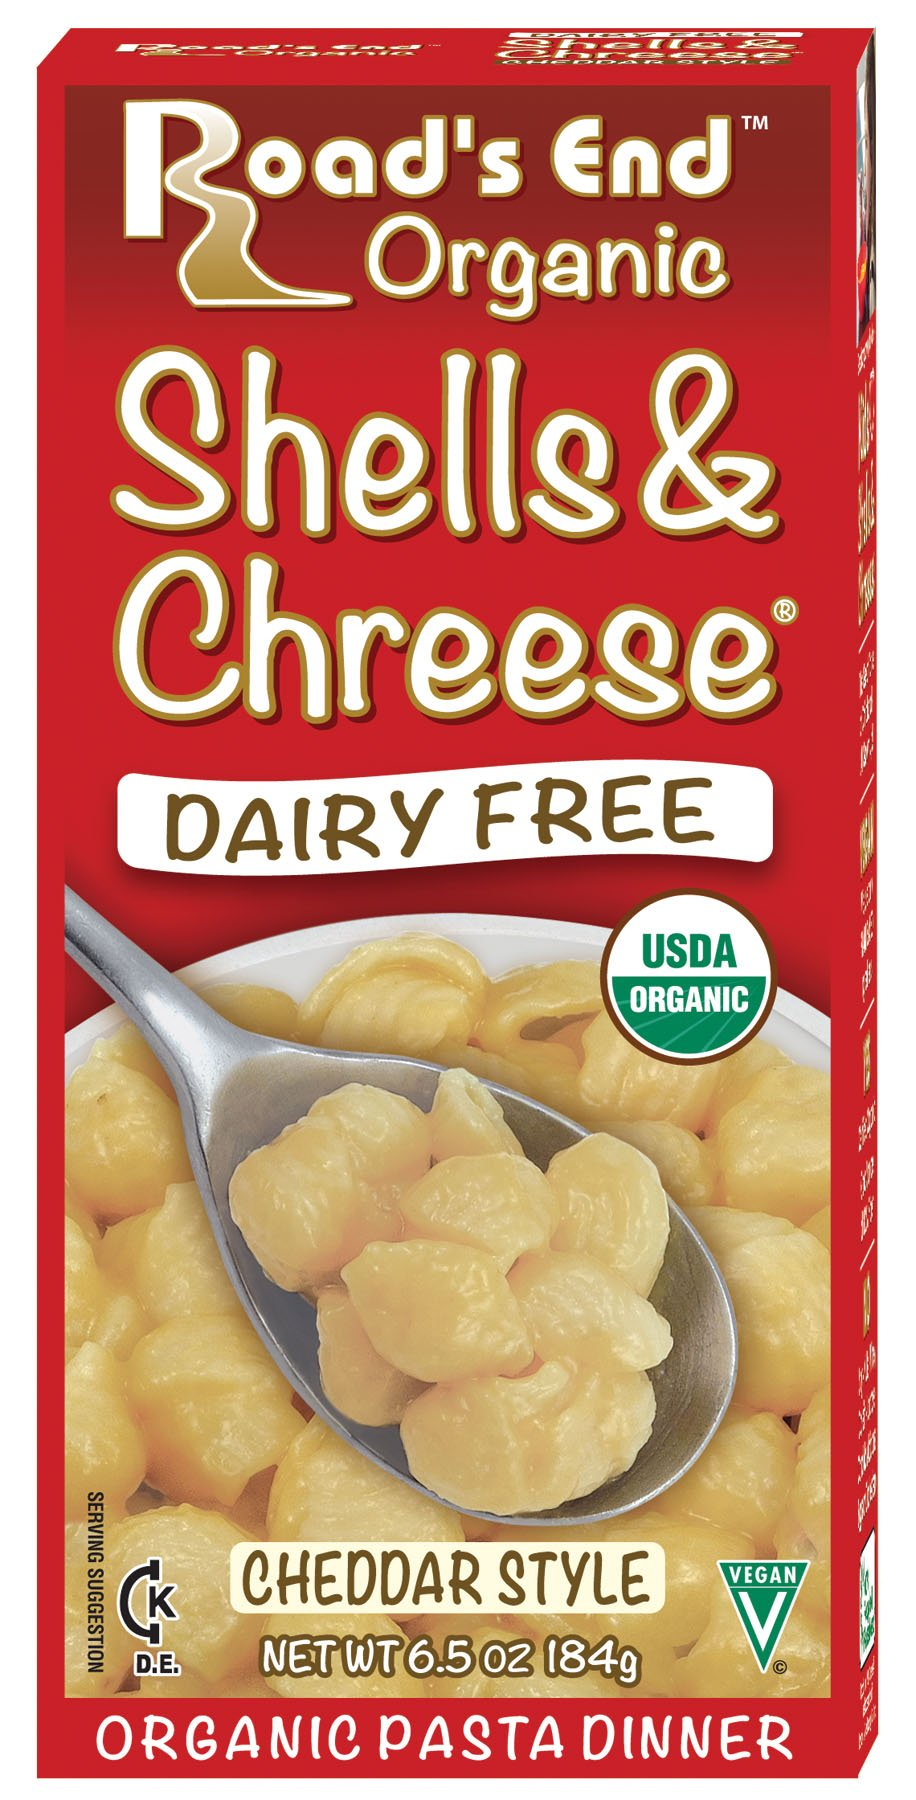 Road's End Organic Shells & Chreese, 6.5 Ounce Boxes (Pack of 12) by Edward & Sons